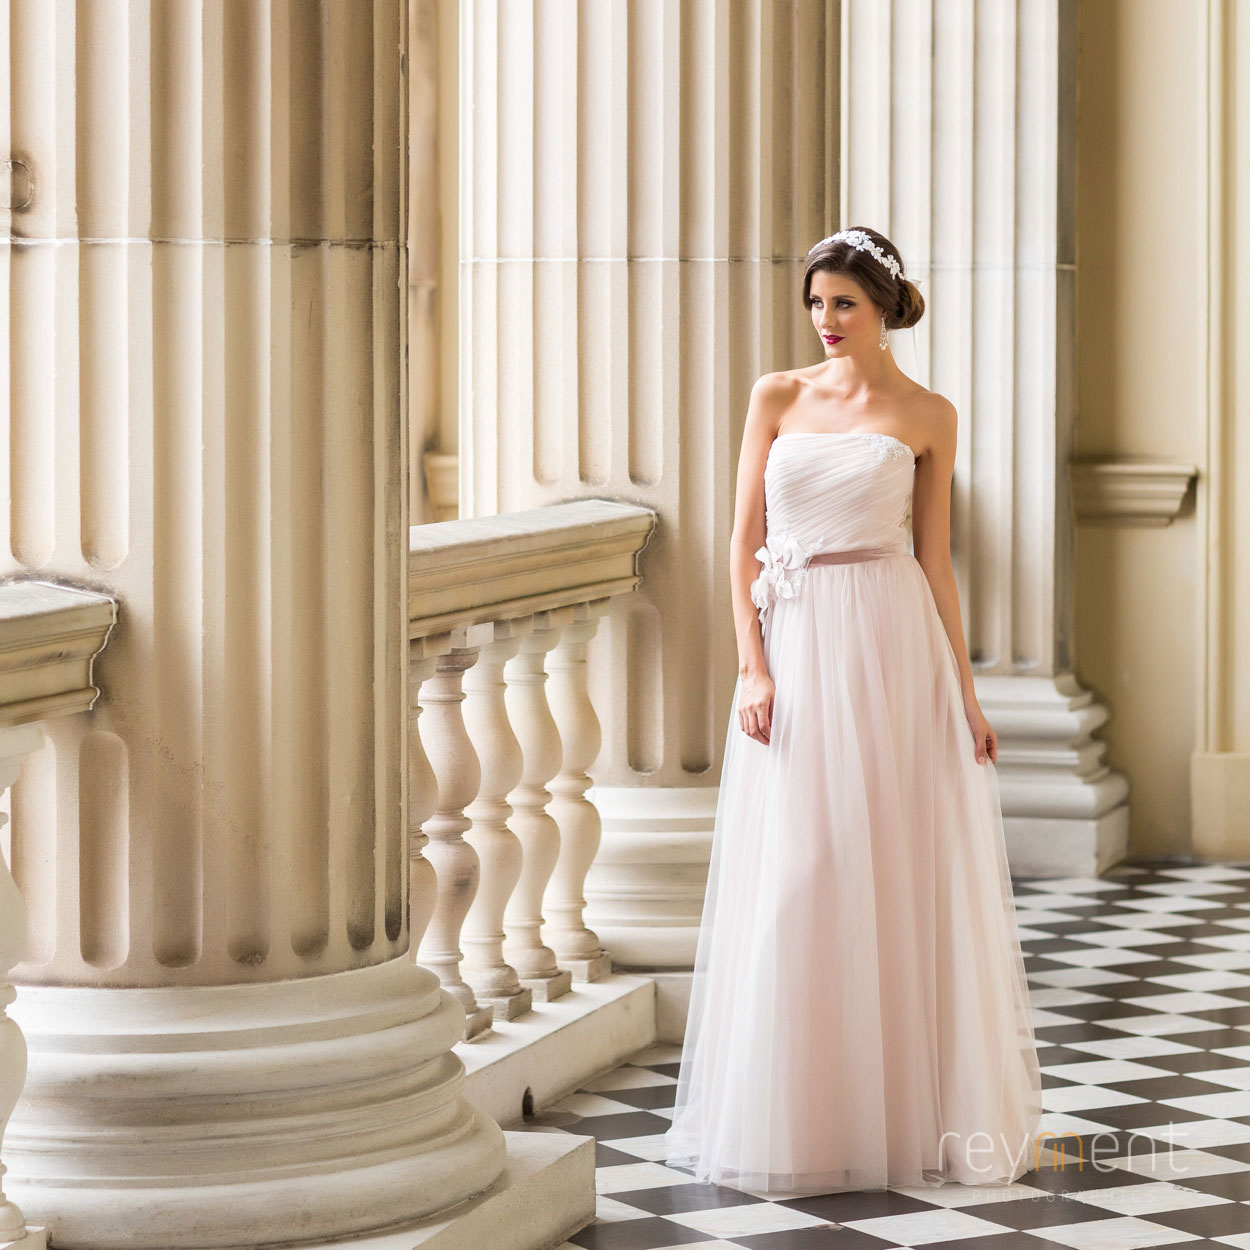 bridal-fashion-and-couture-brisbane-by-john-reyment